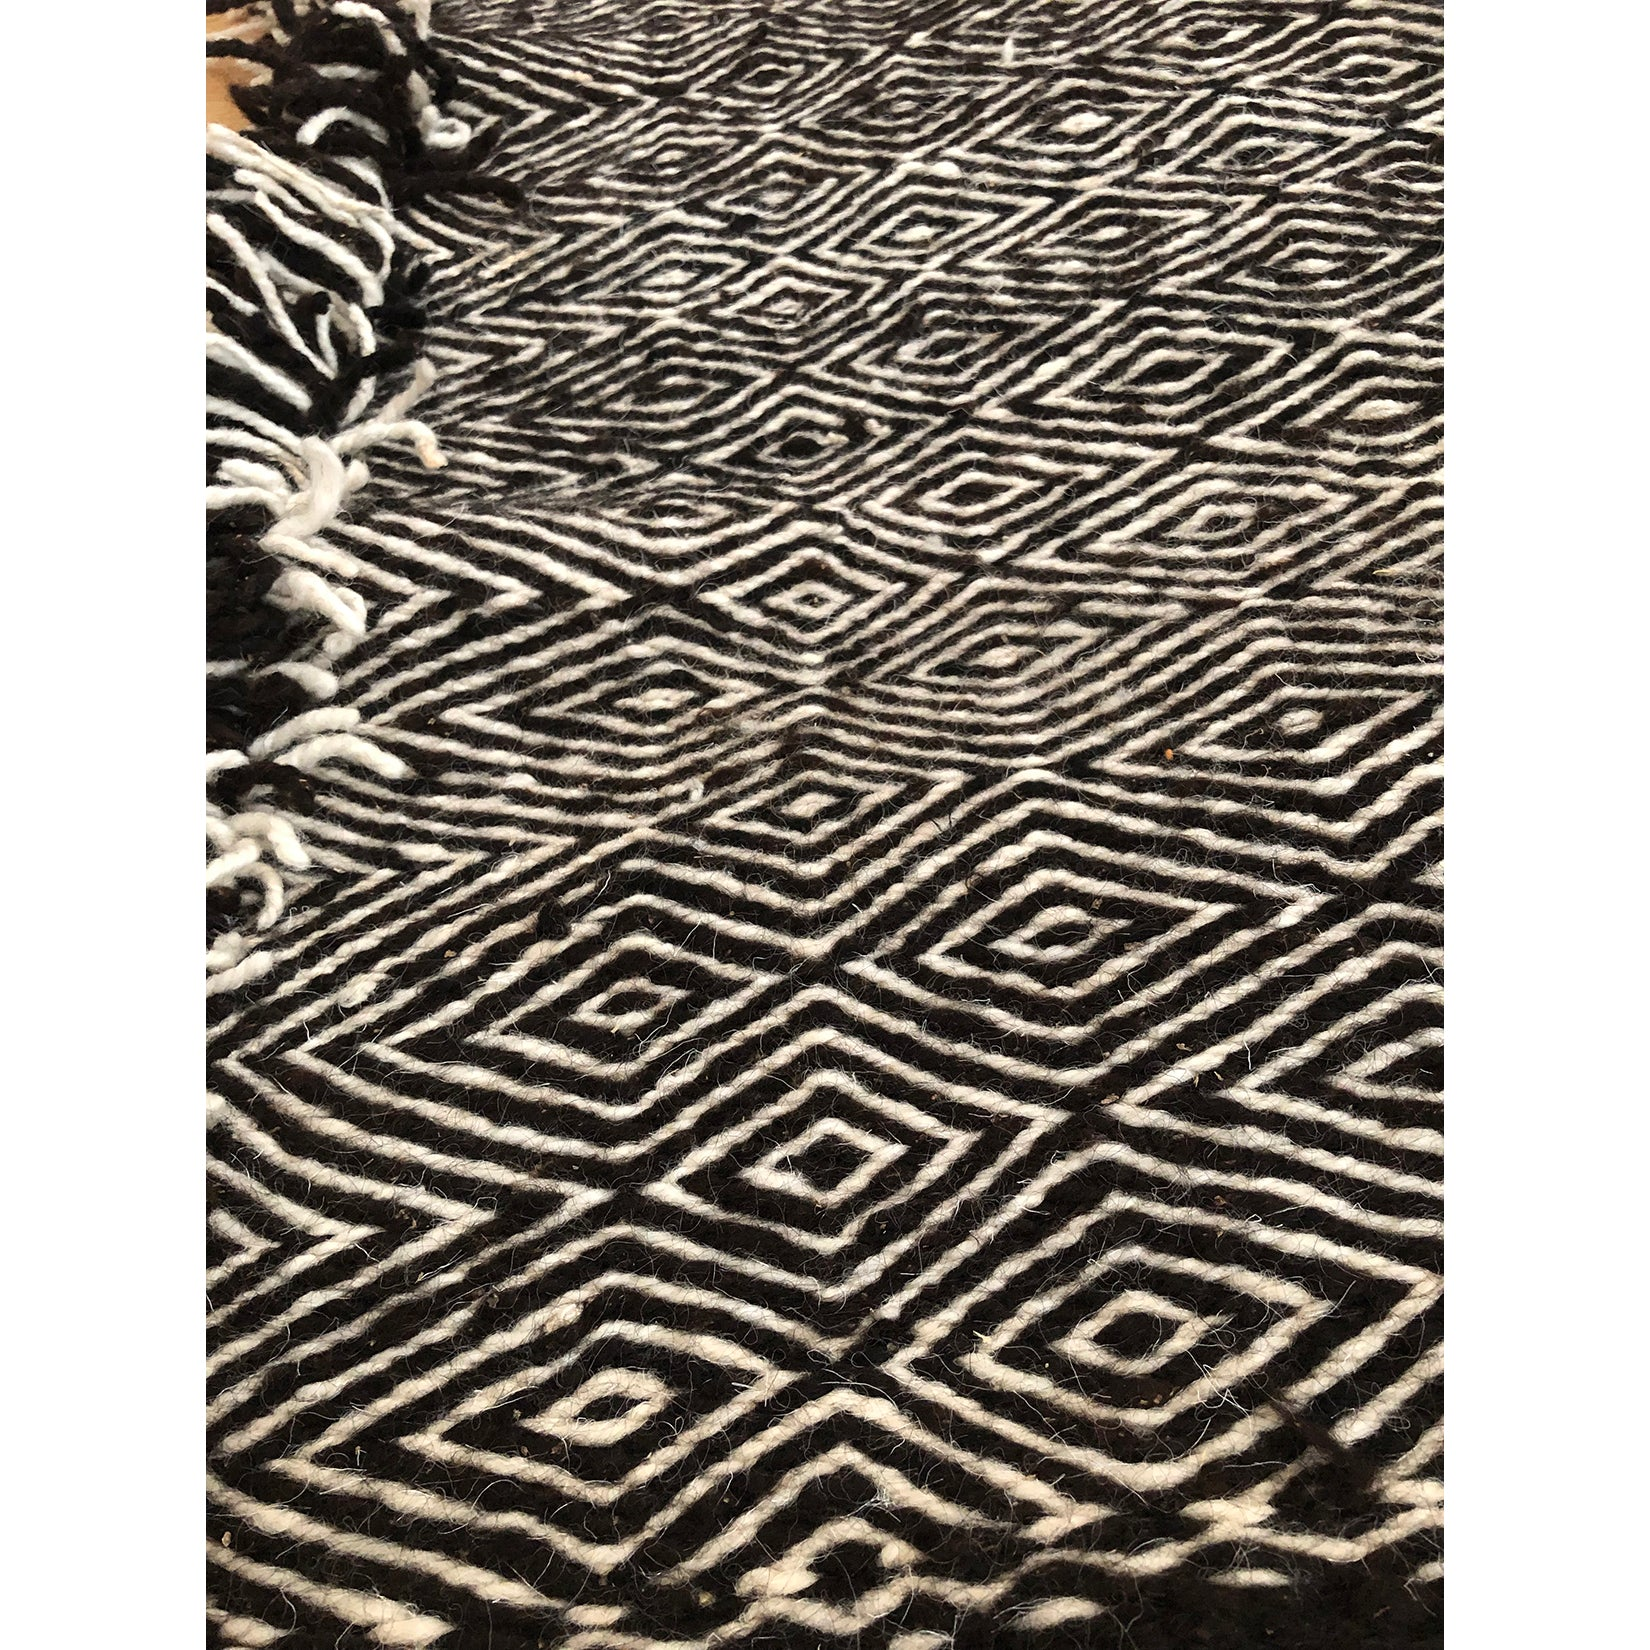 ZAKIYA - High Atlas black and white Moroccan throw - Kantara | Moroccan Rugs